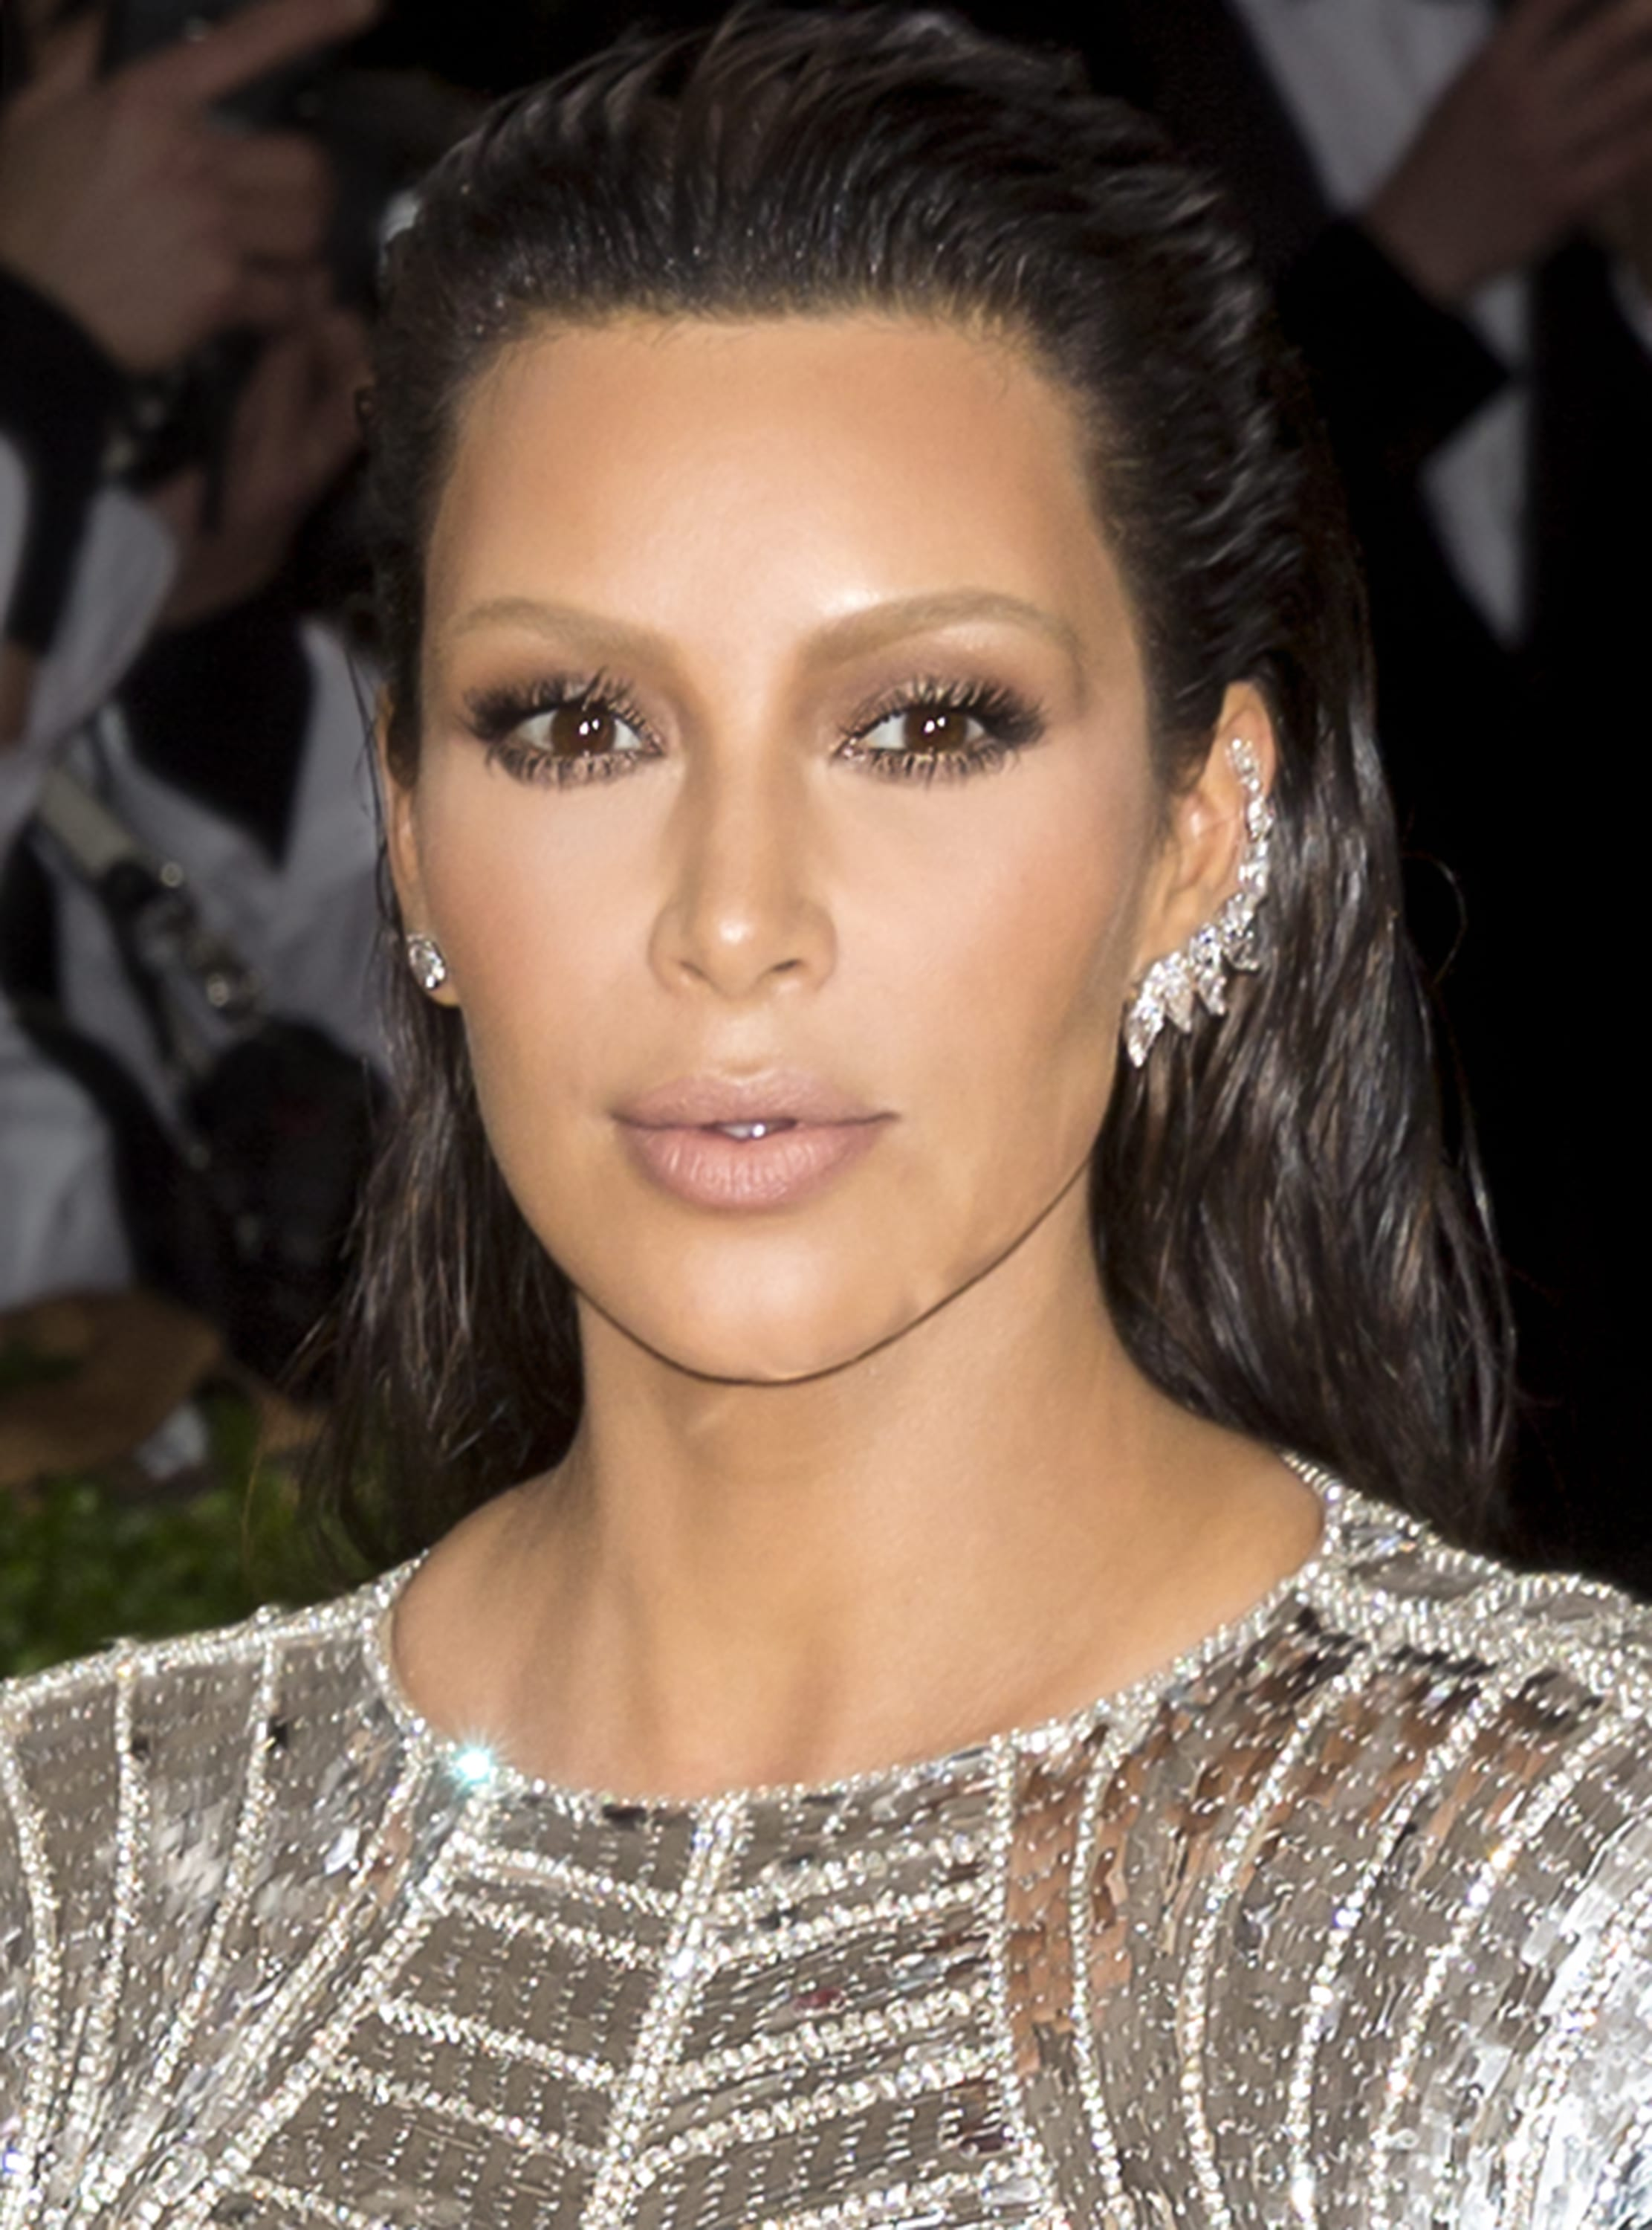 Kim K's Wet-Look, Slicked-Back Hairstyle